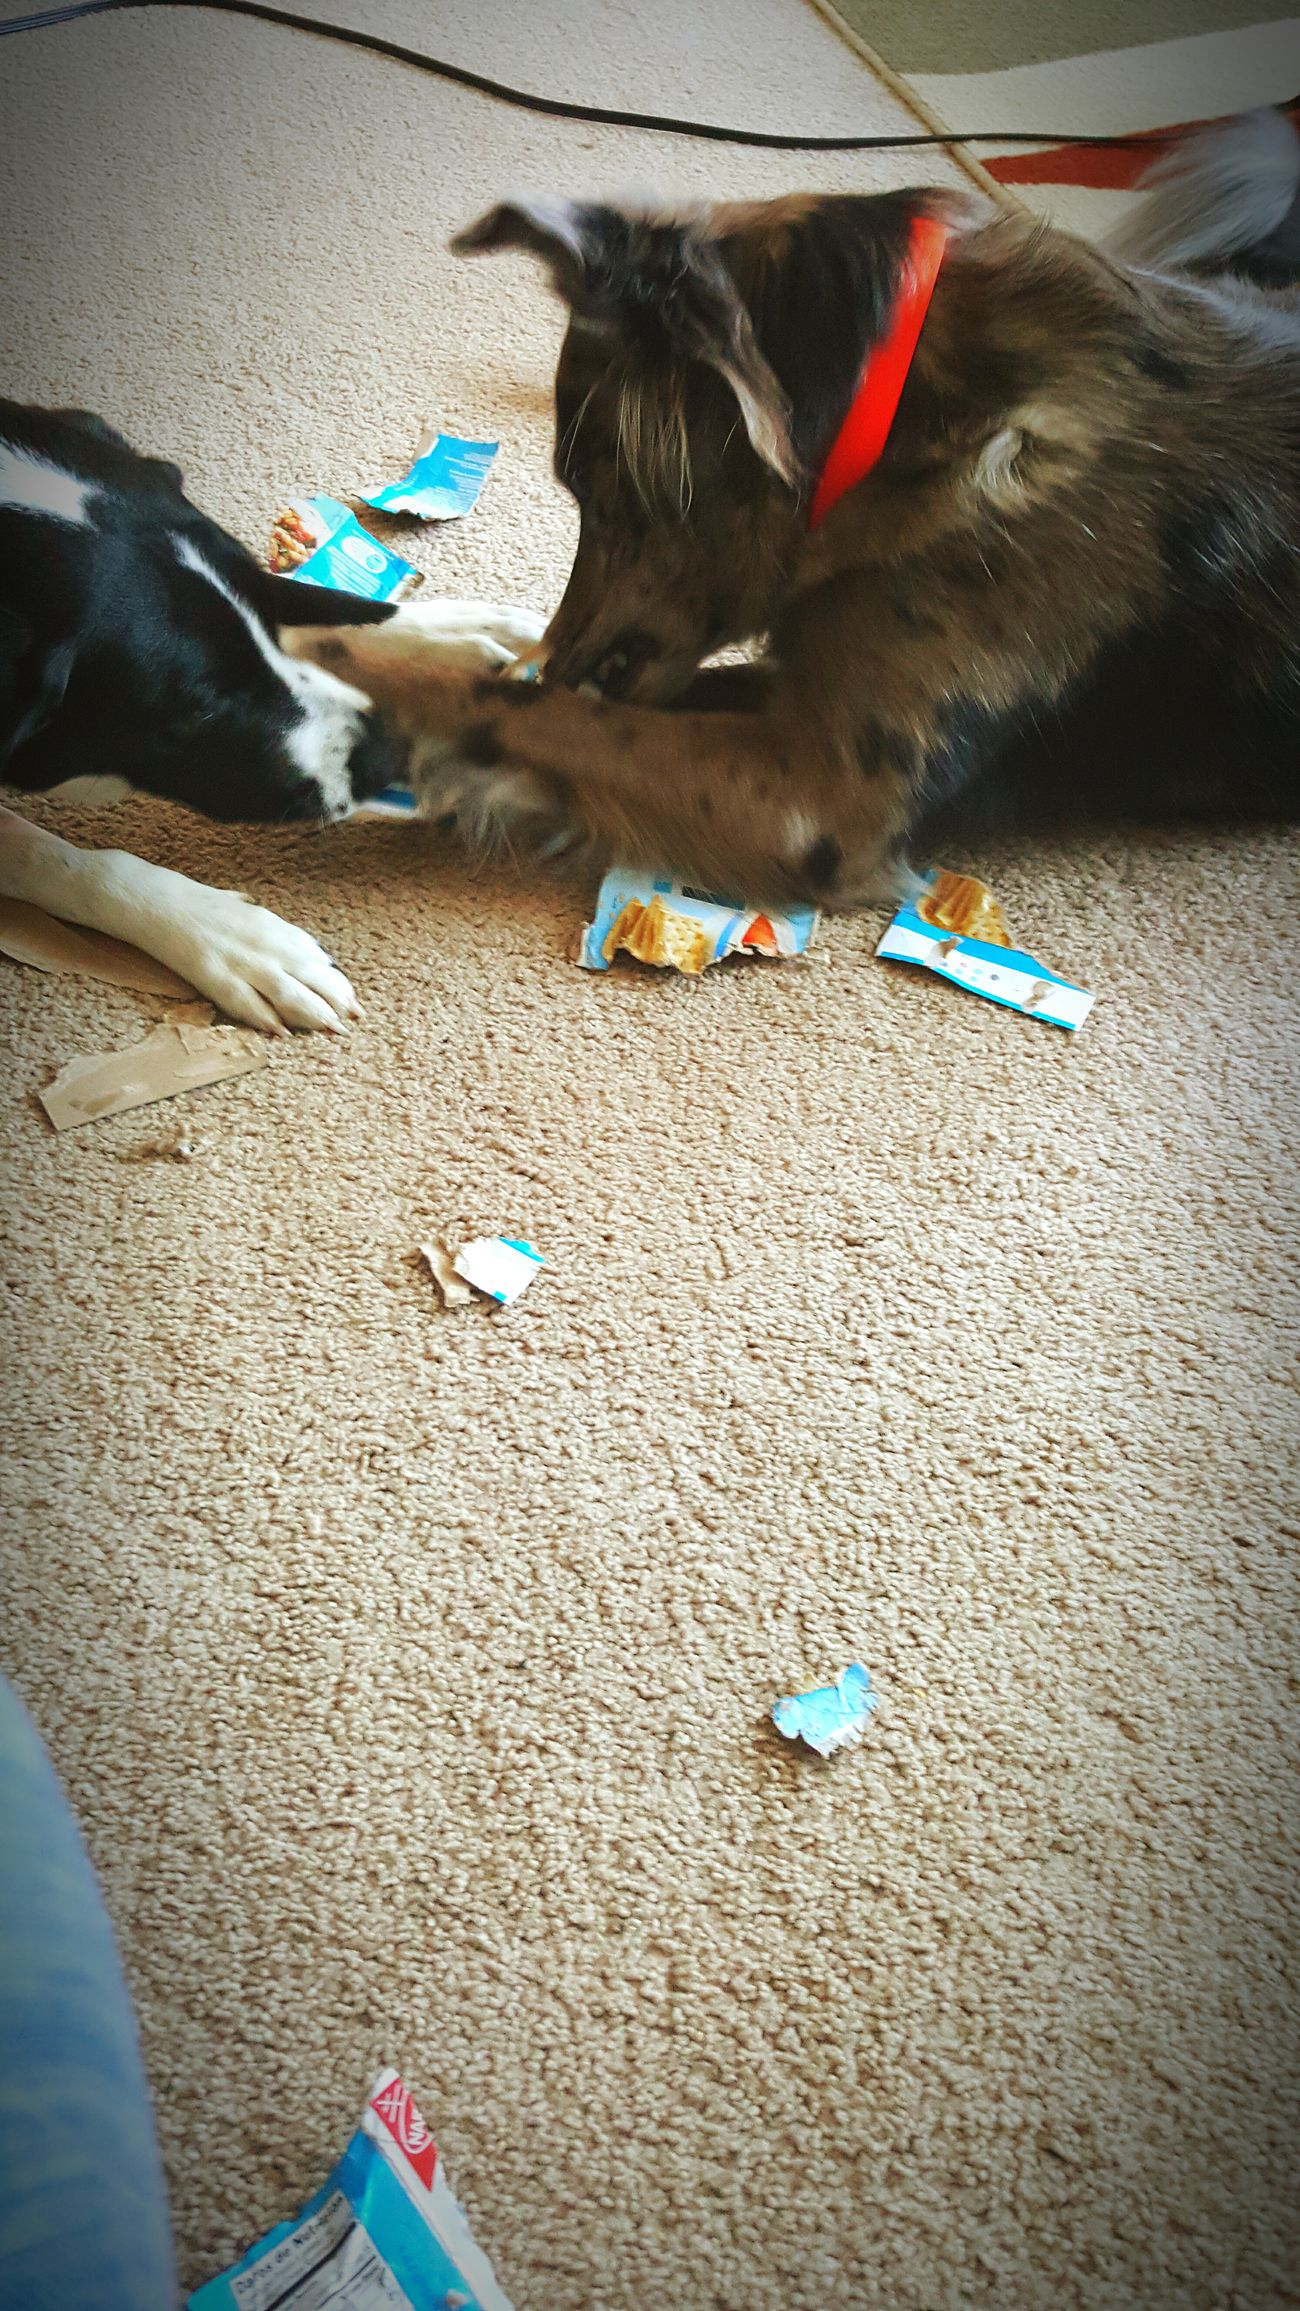 -Ivey & Miko-My New Toy New Toy Playtime Messing Around Friends ❤ Dogoftheday Dogslife Dogs Of EyeEm FUNNY ANIMALS Samsung Galaxy S6 Edge Cellphone Photography My Dogs Are Cooler Than Your Kids Relaxing Time Home Sweet Home Dog❤ Just Chillin' Countrylife Tug Of War The Winner Takes It All Sister From Another Mother  Party Girls Girls Just Wanna Have Fun :)